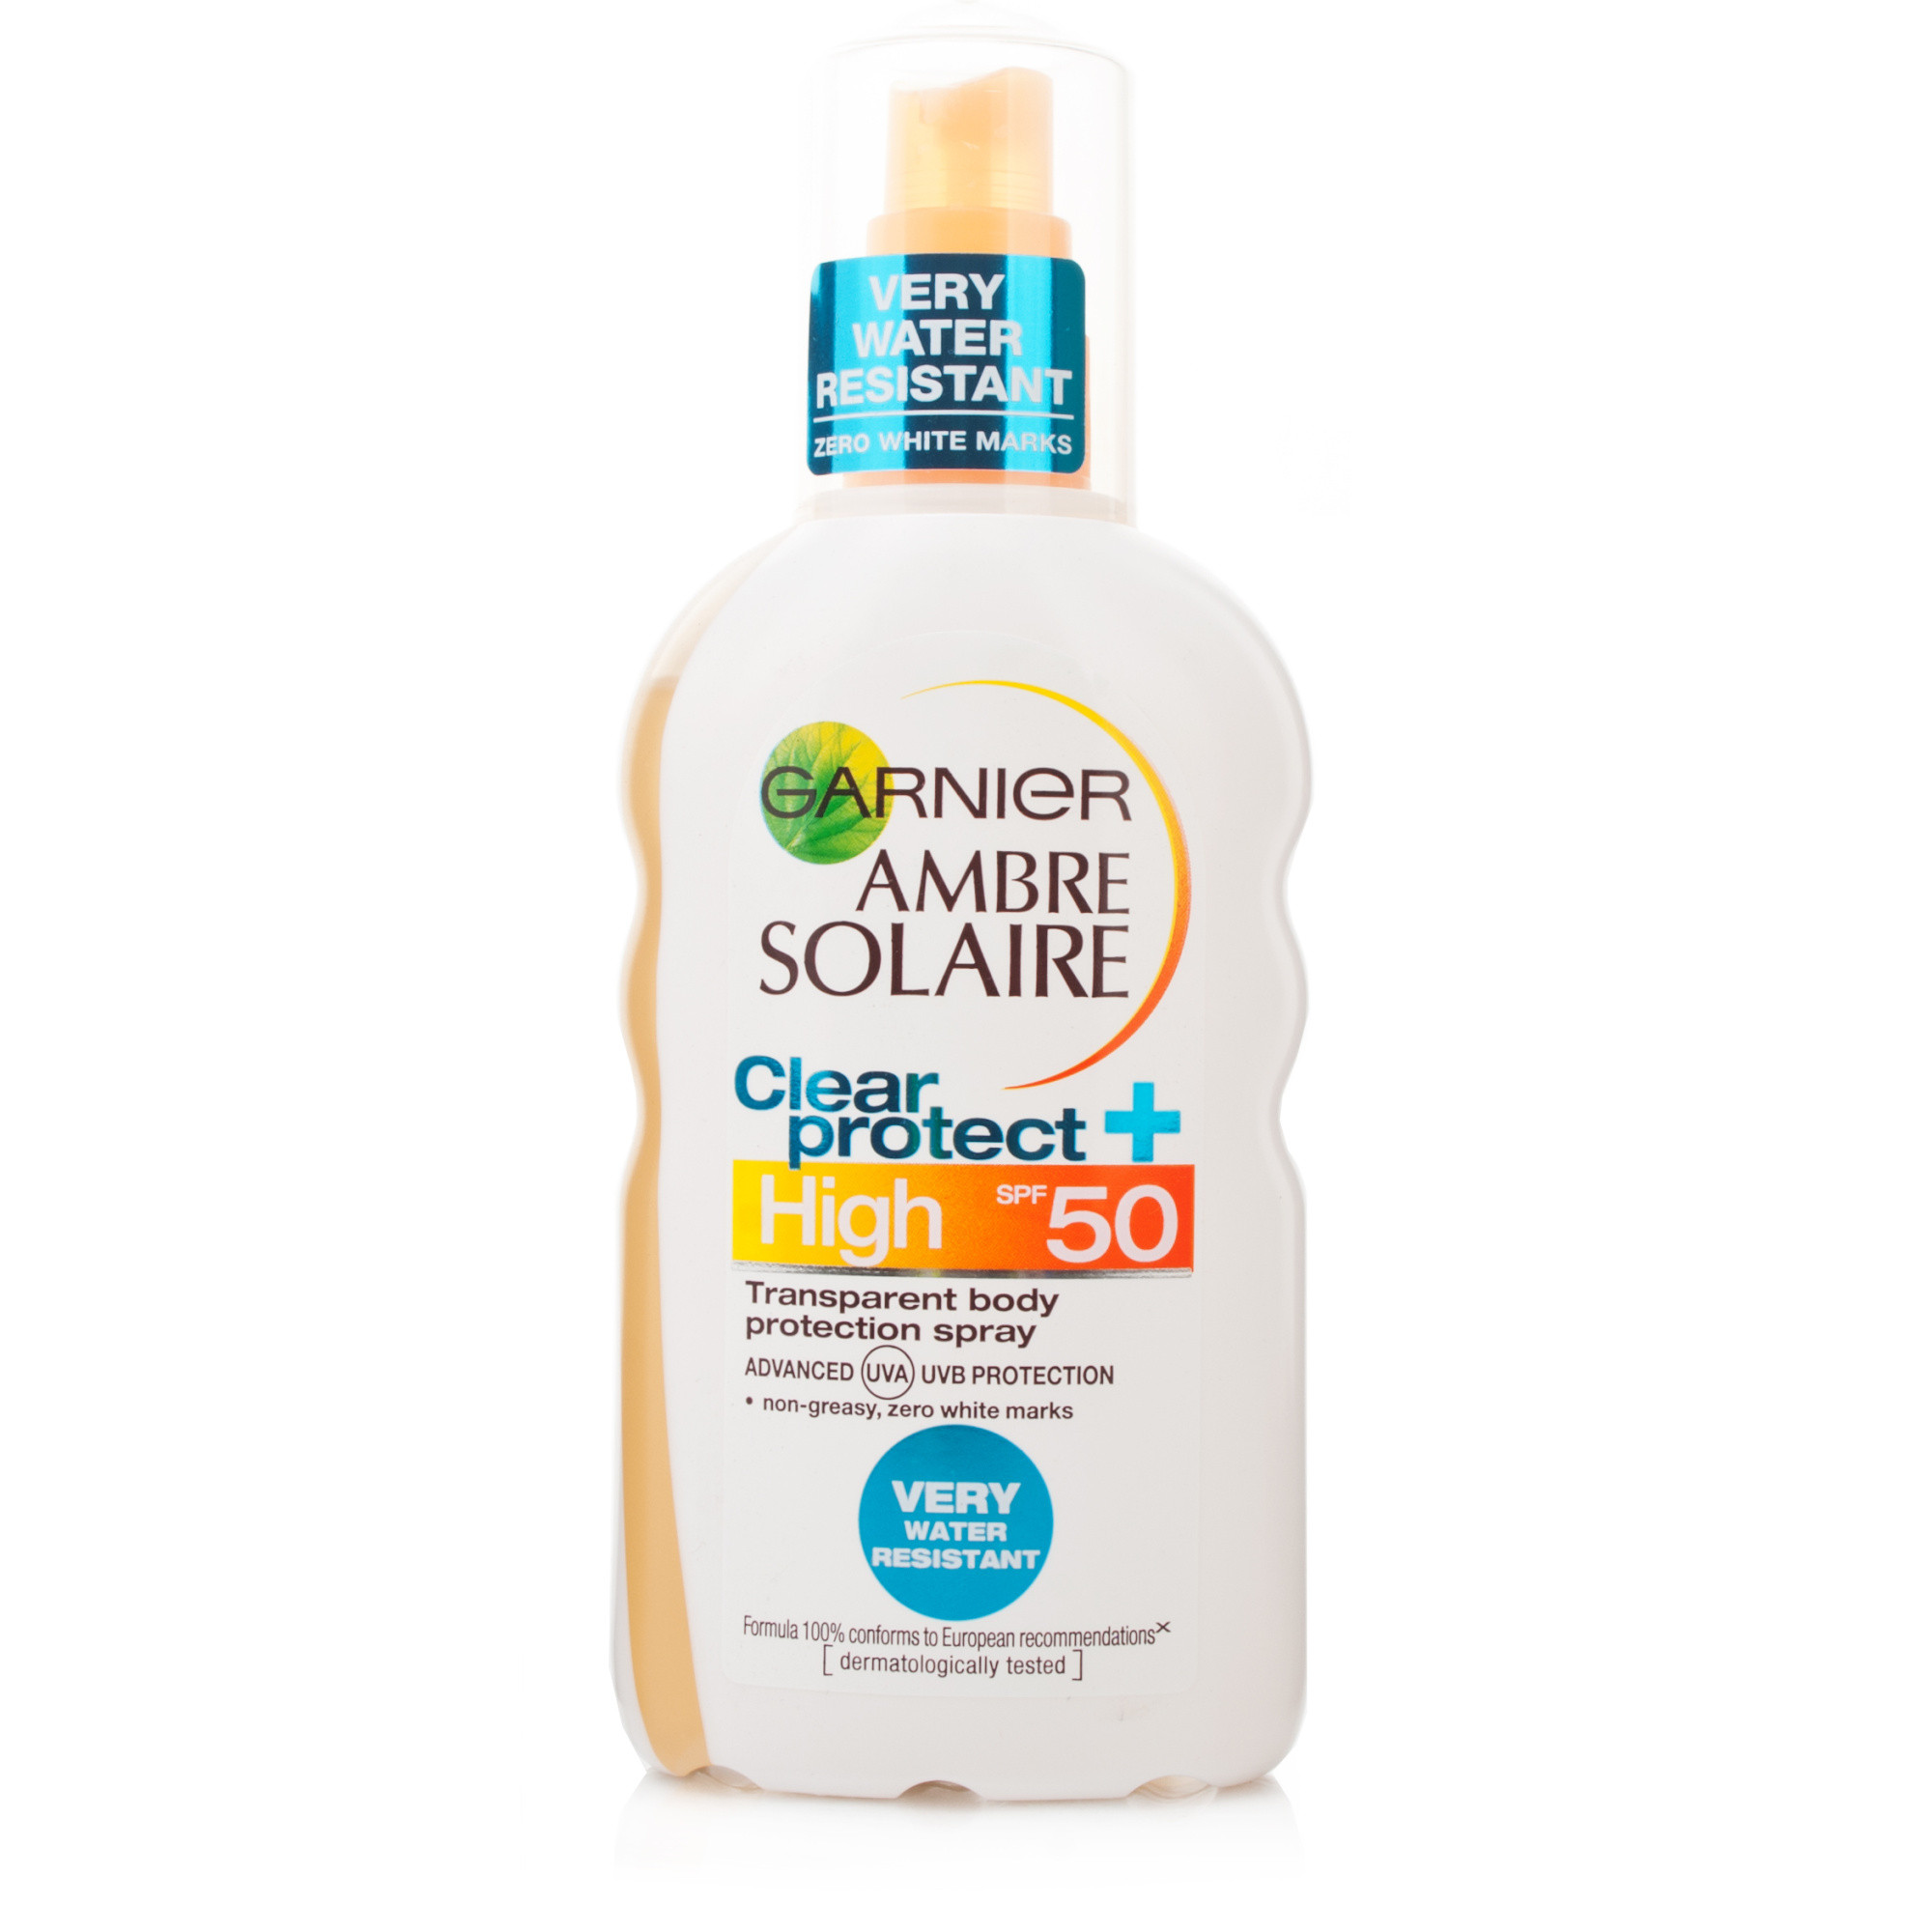 Garnier Ambre Solaire Clear Protect Spray SPF50